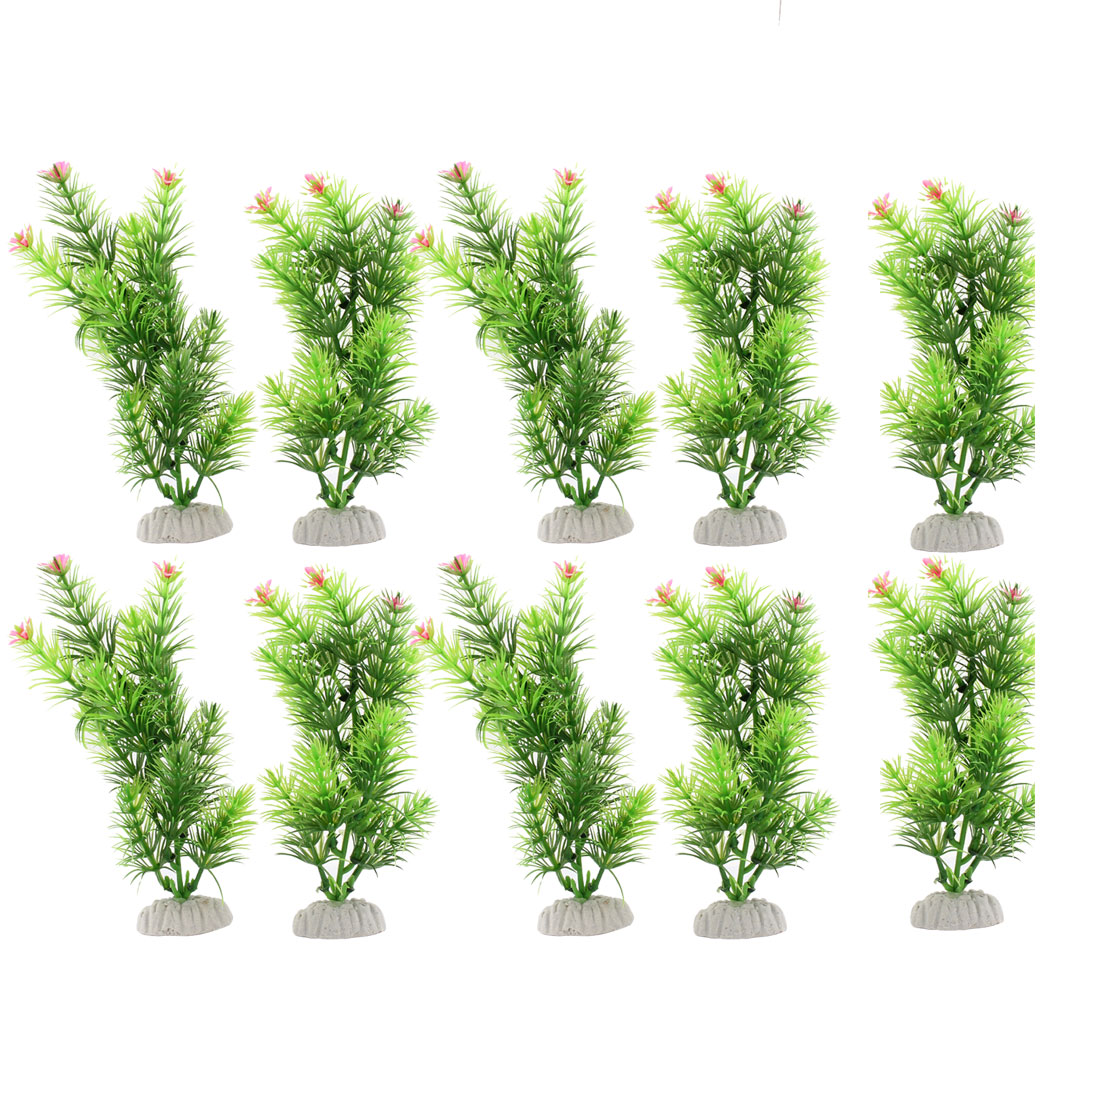 "10 Pcs 7.1"" Height Manmade Plastic Aquascaping Grass Pink Flowers for Fish Tank"